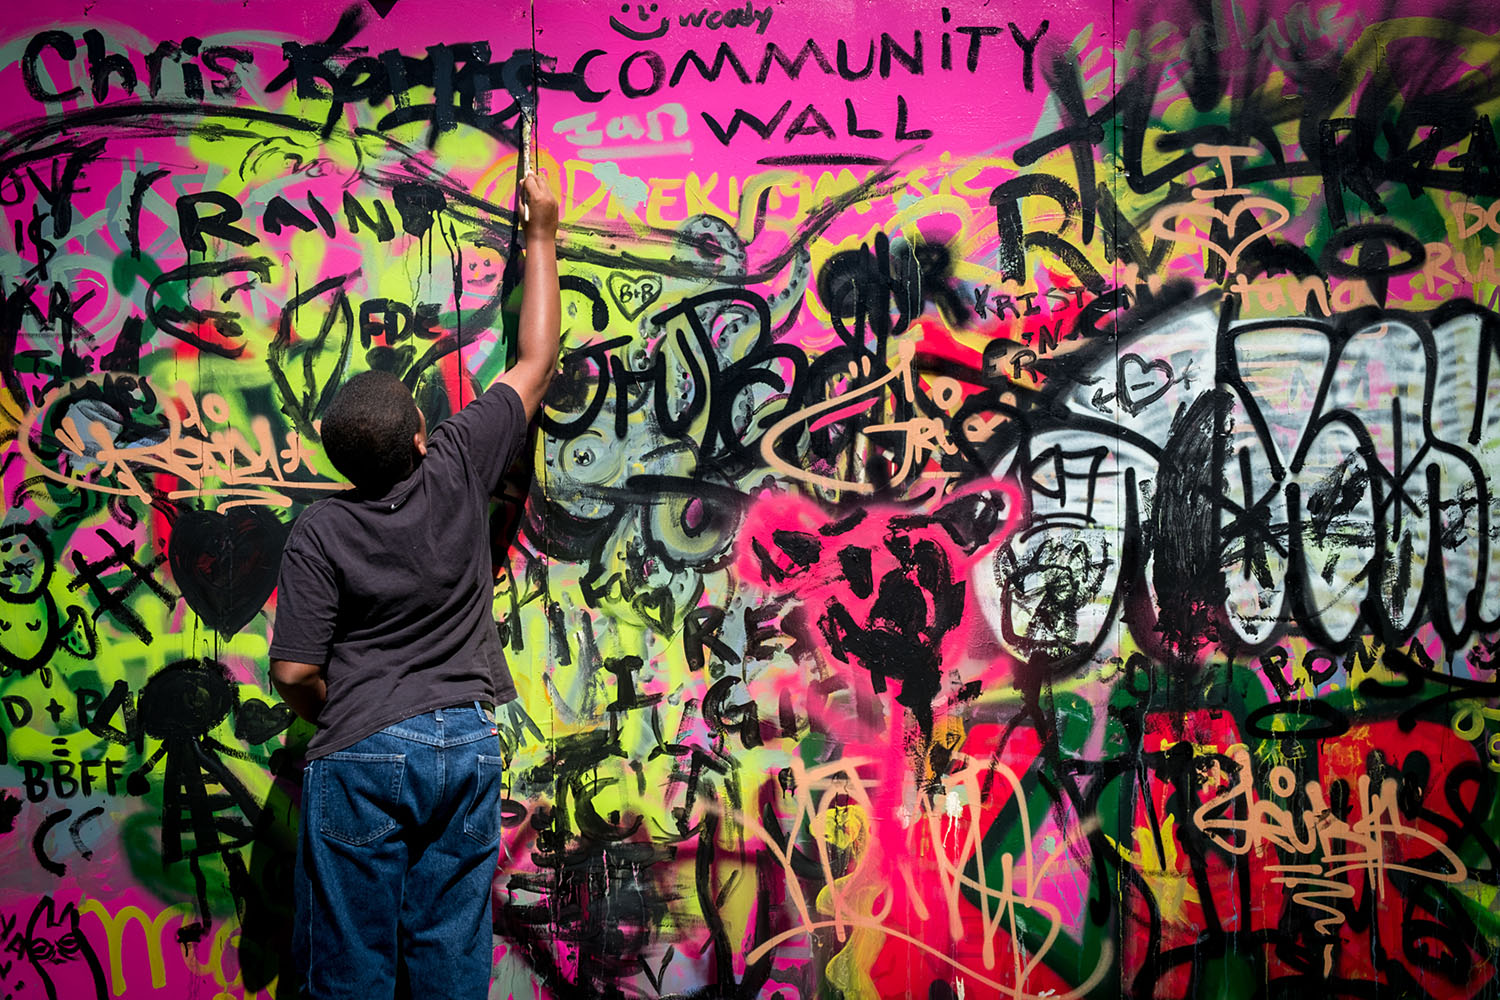 Arts & Culture - The Richmond region has art woven in every corner. With a vibrant young art scene, Richmond is one of the leading art destinations. From open mic nights to festivals, mural art and hip hop battles we have Black excellence on display for all to enjoy.